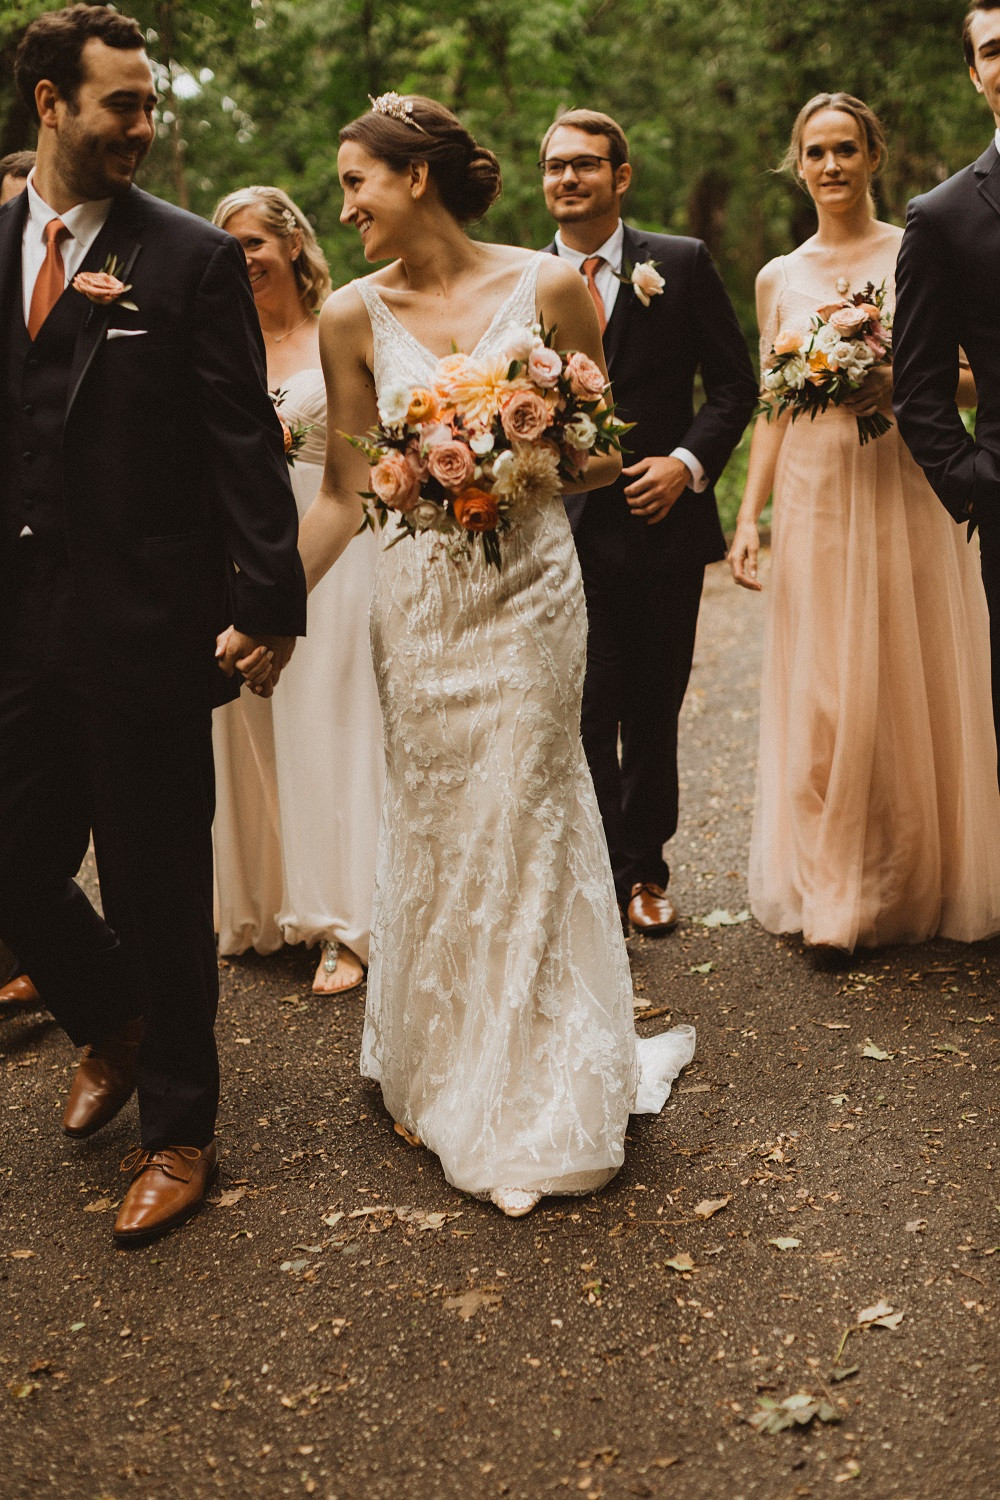 moody peach and blush bridal bouquet by Studio Bloom Iowa wedding florist